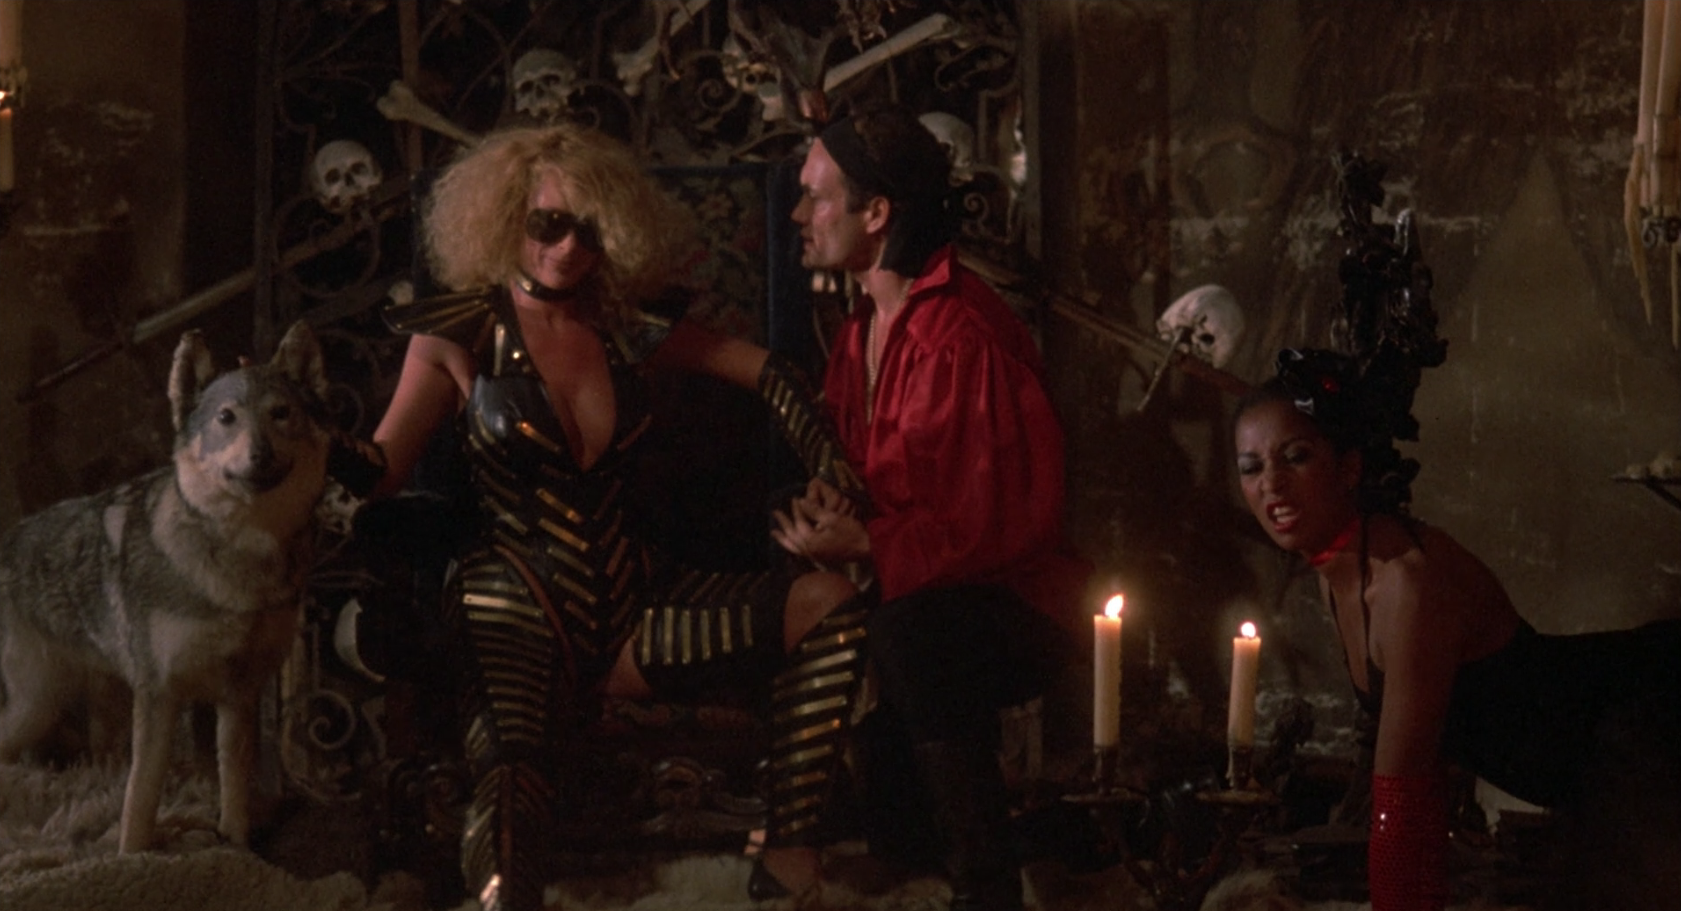 HOWLING II: YOUR SISTER IS A WEREWOLF (1985 / DCP) - Fri Jan 18th 10pm / The Loft Cinema, Tuscon AZThe hot 'n hairy Howling hijinks continue in this bizarre sequel that sends Reb Brown and horror legend Christopher Lee on a trip to Transylvania to track down a vicious werewolf queen!More info HERE